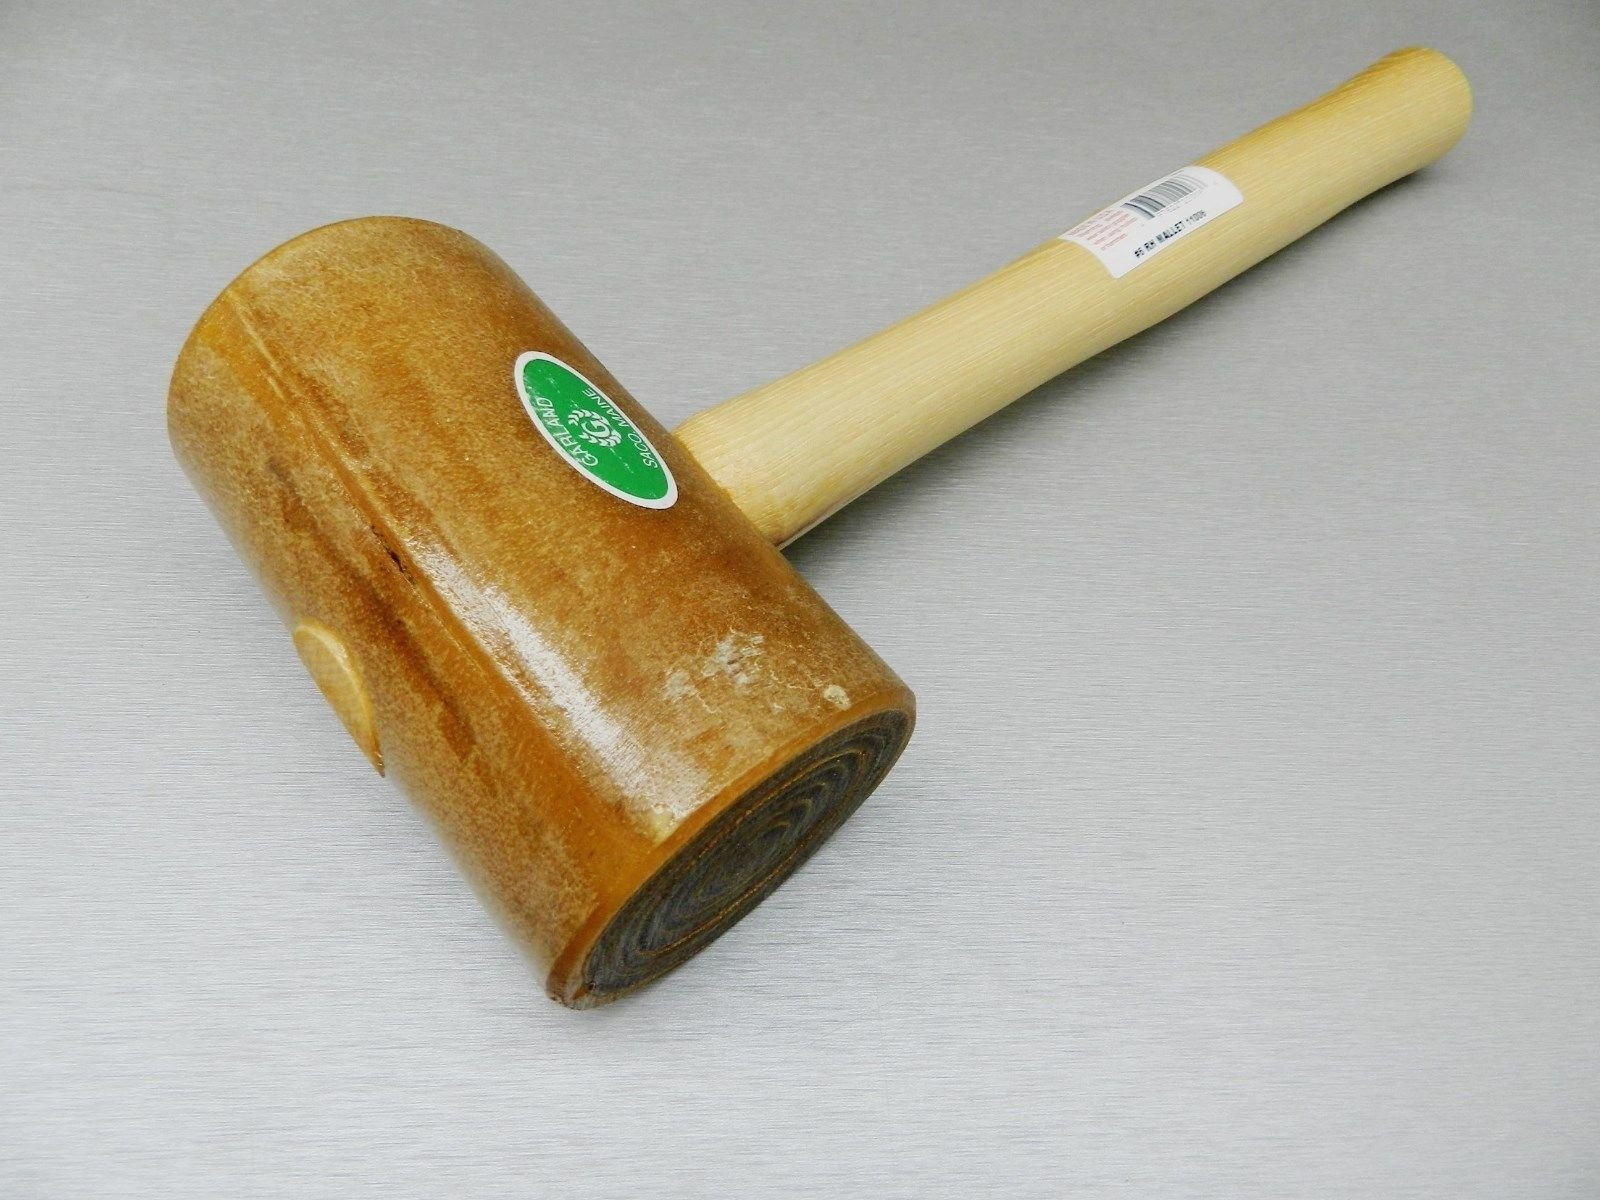 #5 Rawhide Mallet Garland Leather Work Assembly Hammer Large 2-3/4'' Face 22oz (1.5 R BOX A) NOVELTOOLS by Garland (Image #6)